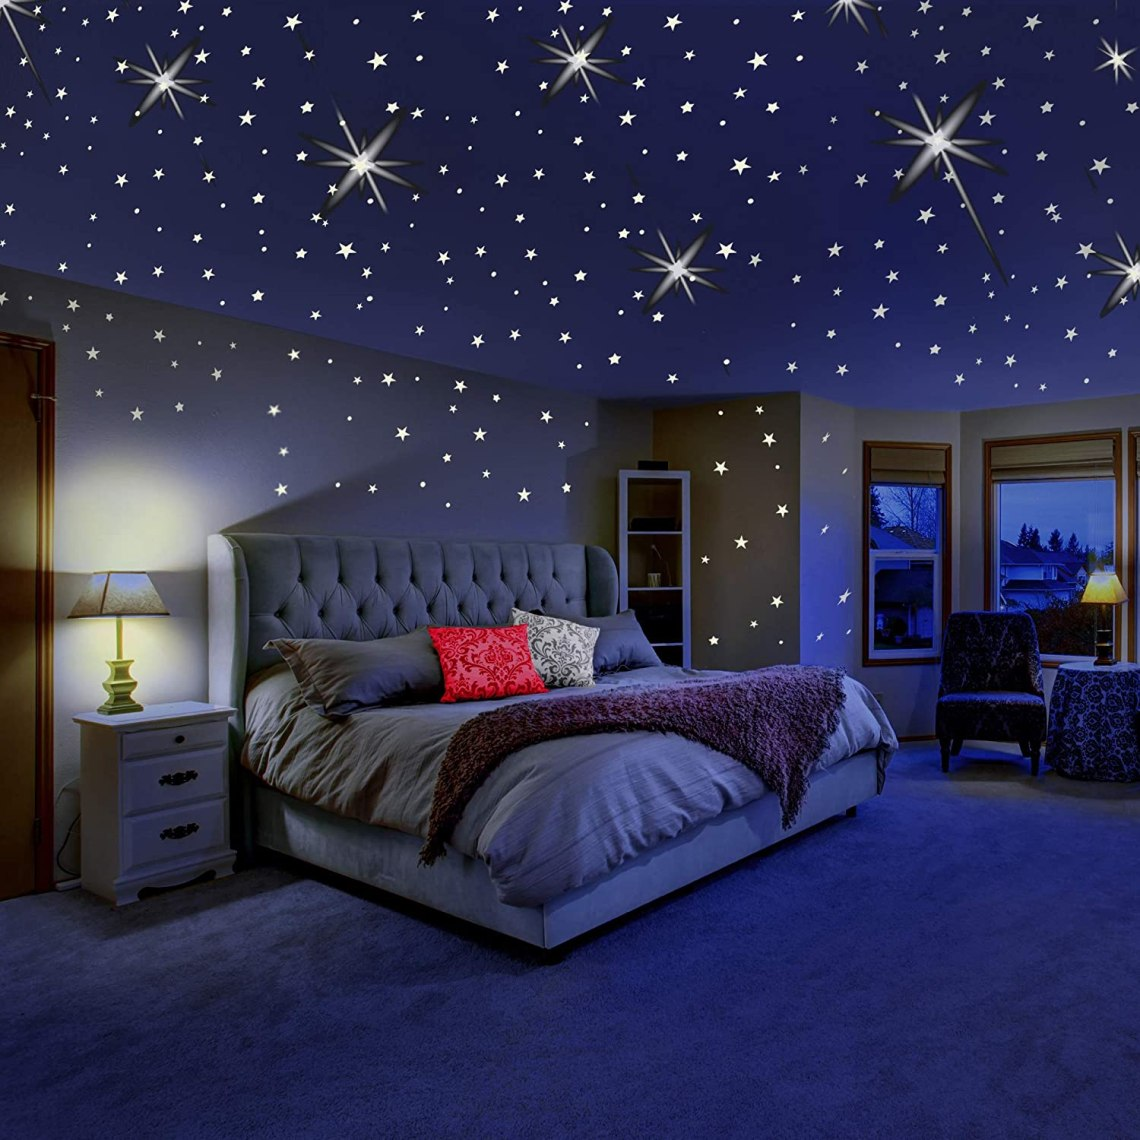 Amazon Com Glow In The Dark Stars For Ceiling Or Wall Stickers Glowing Wall Decals Stickers Room Decor Kit Galaxy Glow Star Set And Solar System Decal For Kids Bedroom Decoration